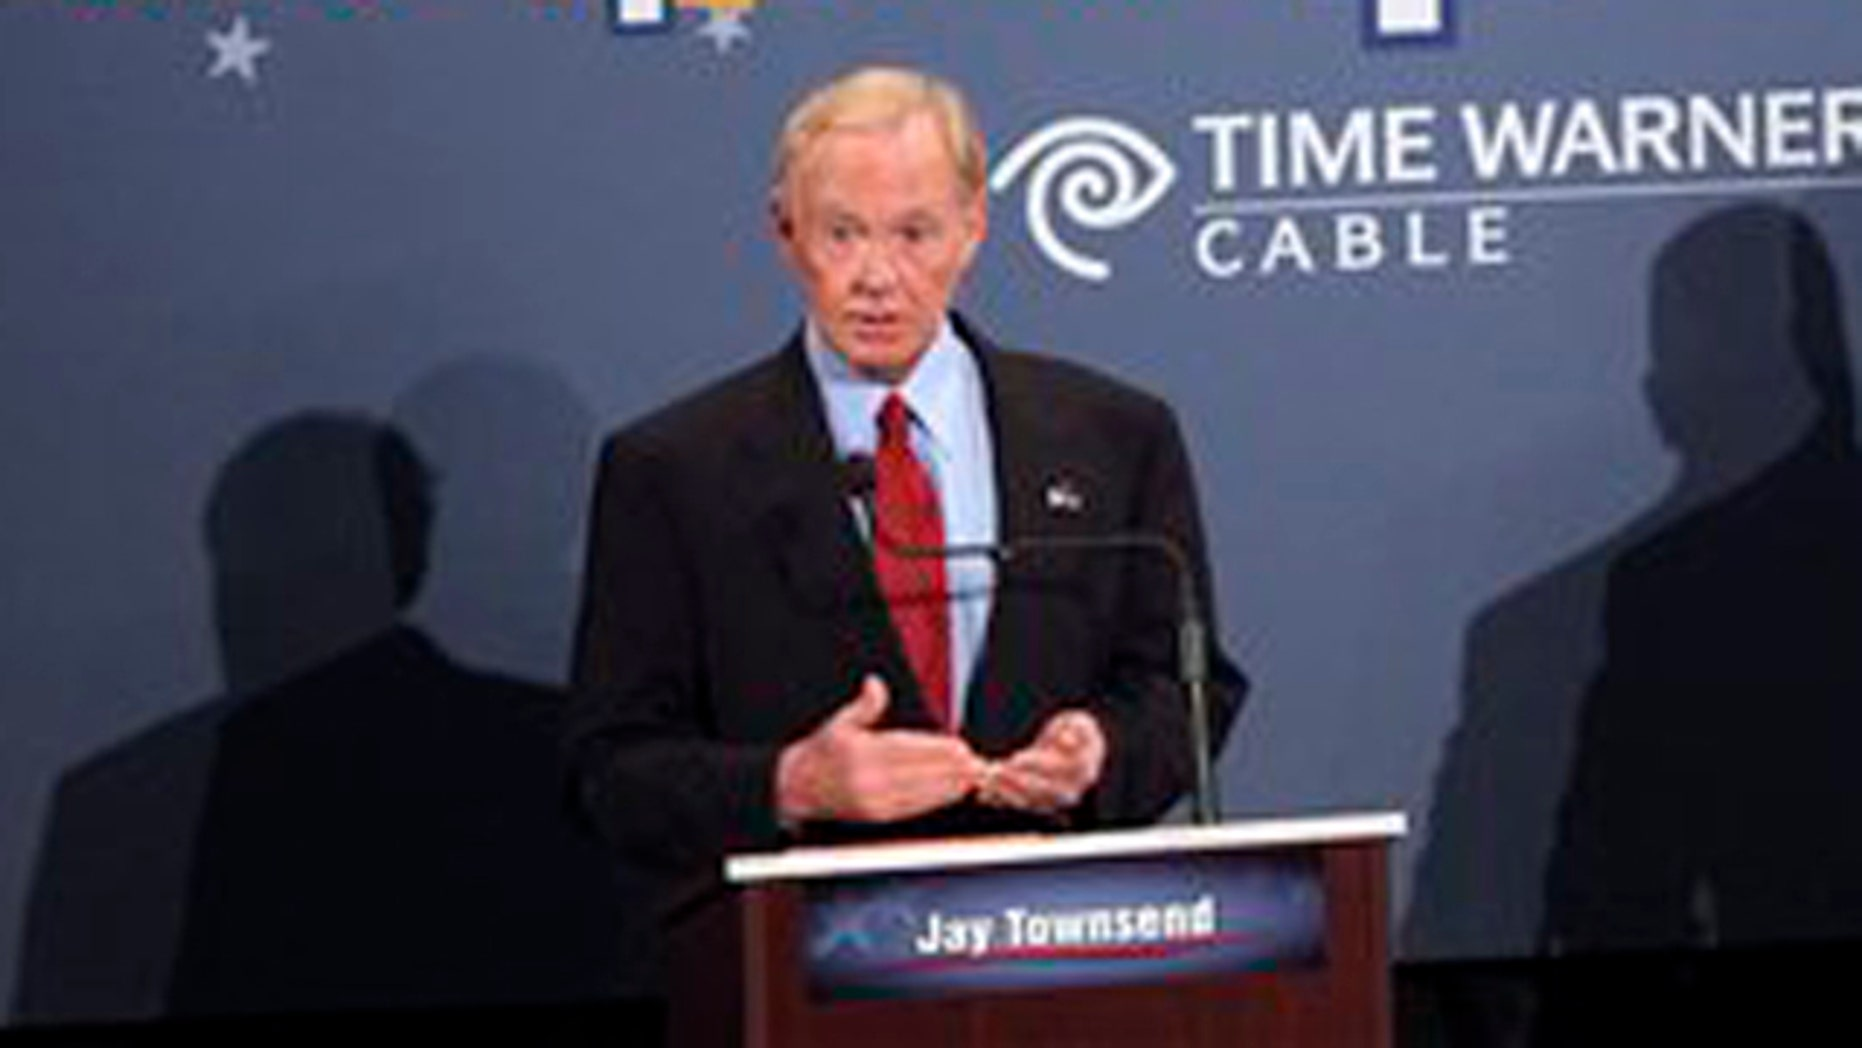 Jay Townsend speaks at the Republican primary debate for U.S. Senate at Union College in Schenectady, N.Y., Aug. 23. (AP Photo)